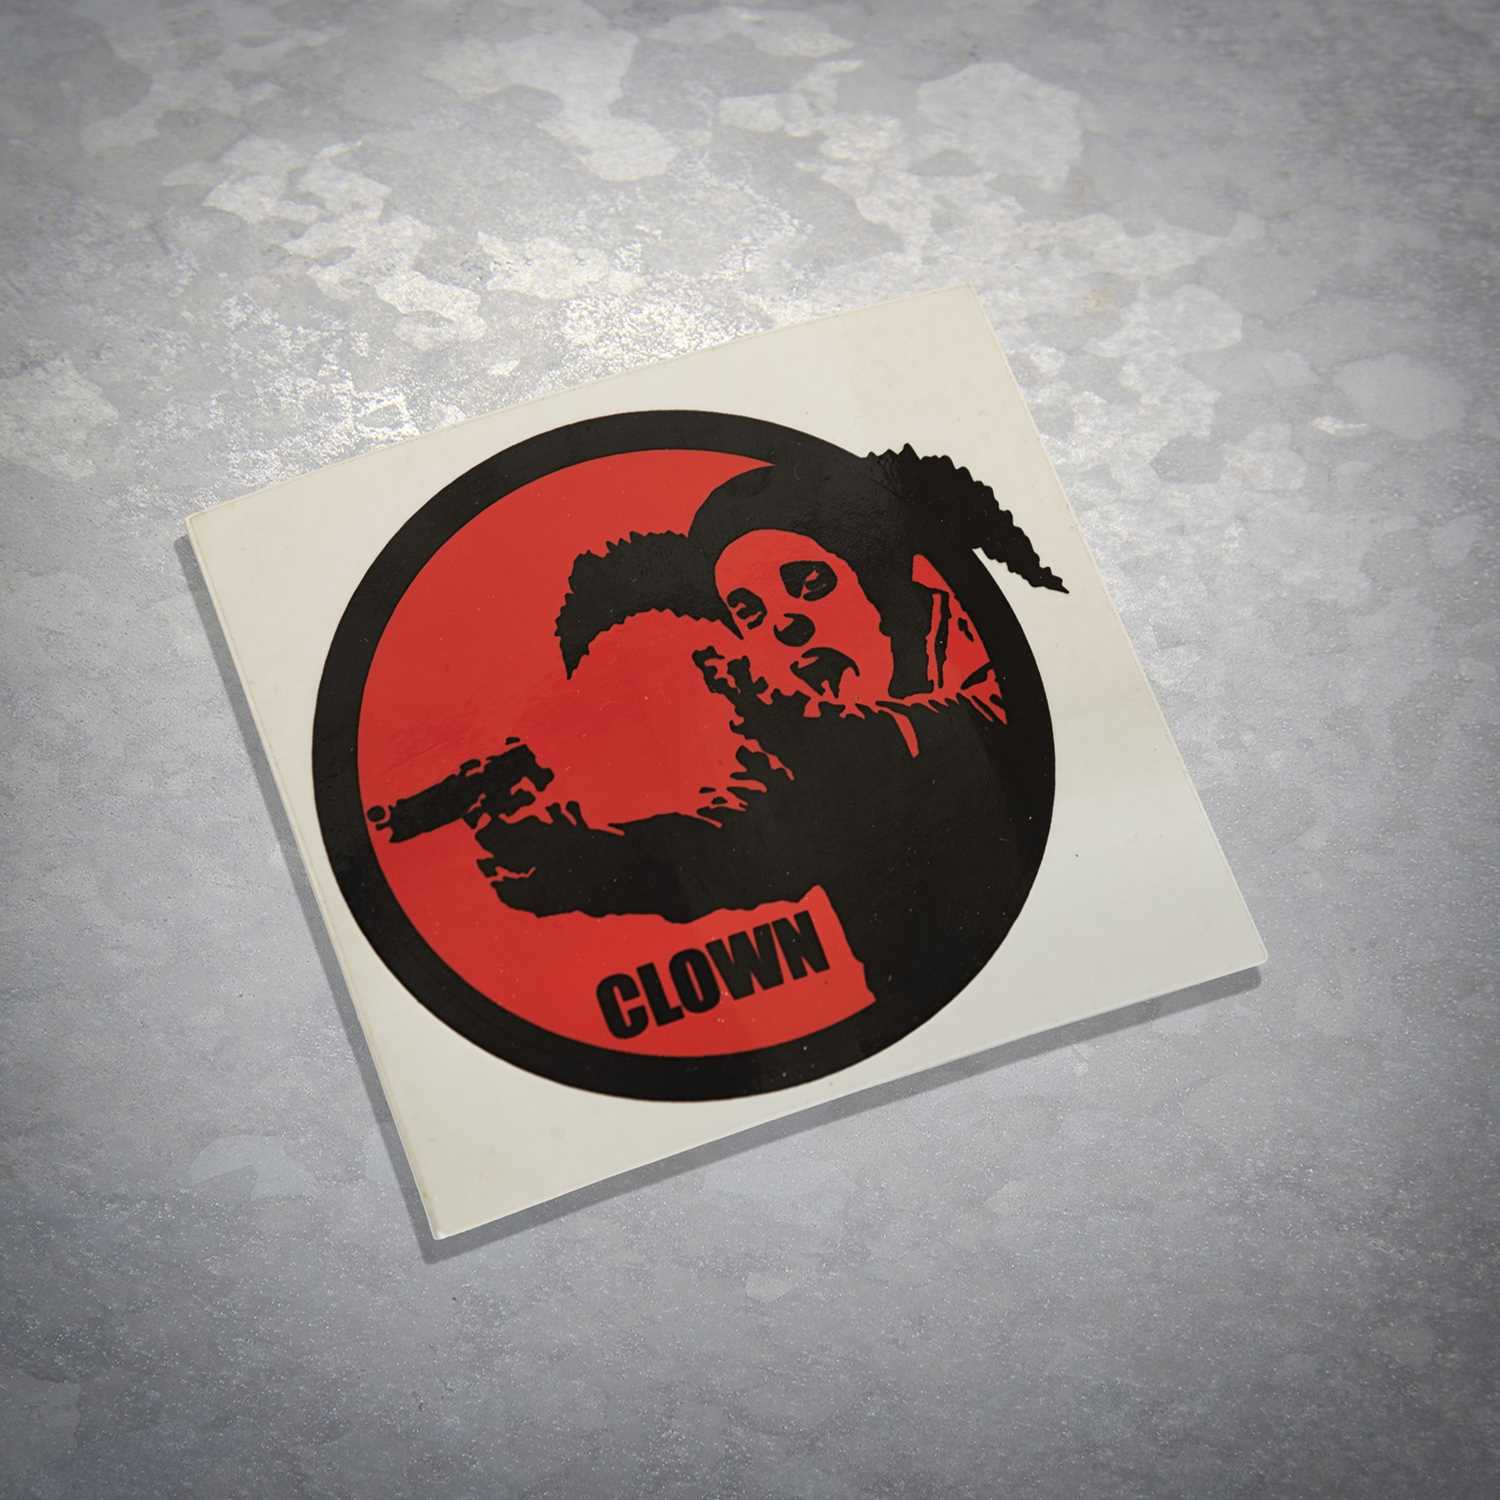 Lot 51 - Banksy (British 1974-), 'Clown Skateboards Sticker (Red & White)', 2001 (Two Works)